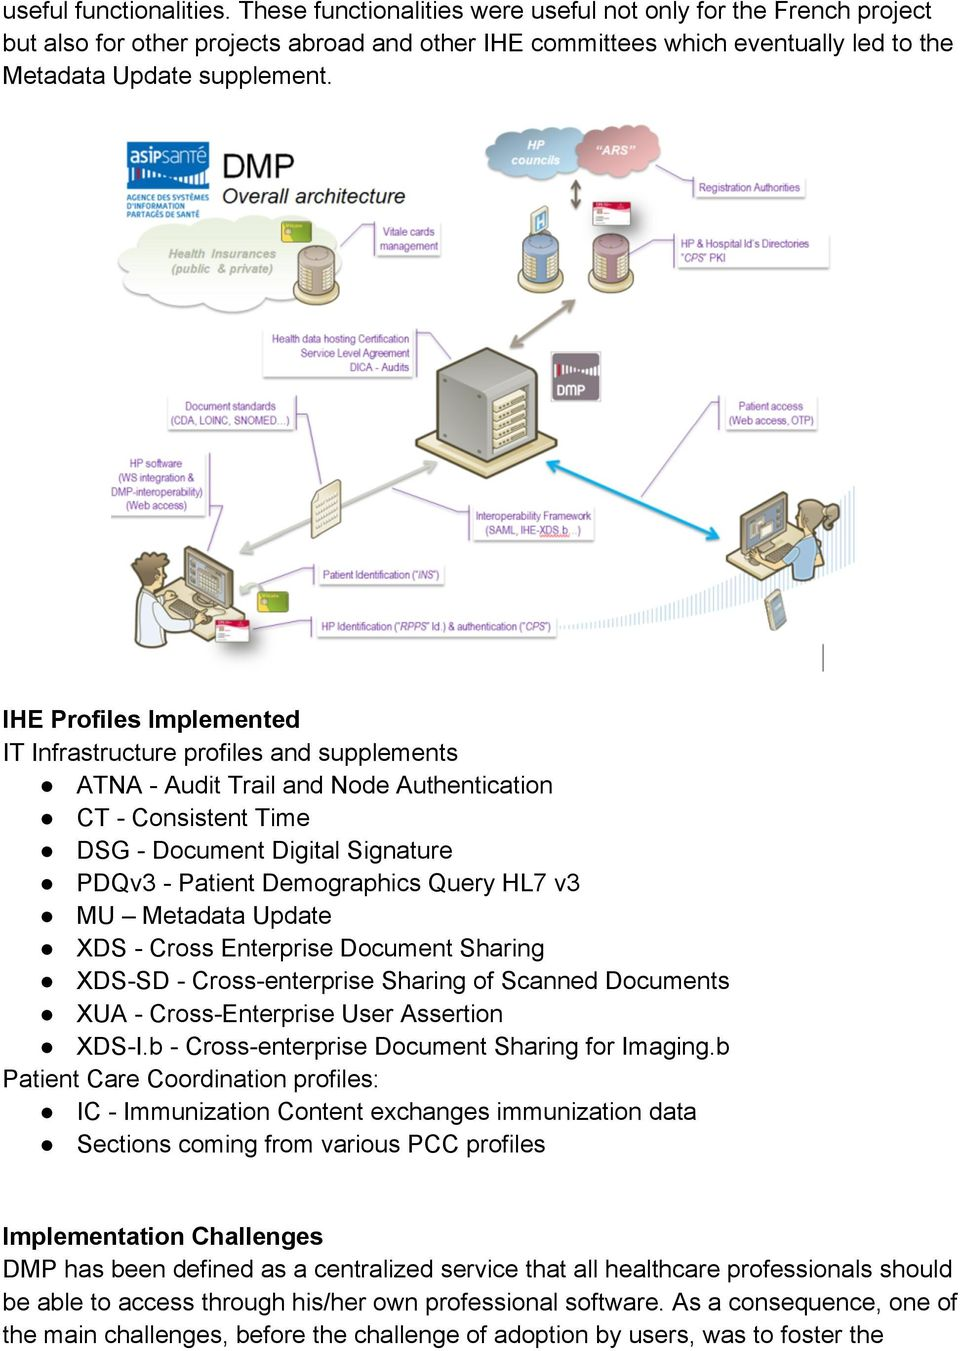 IHE Profiles Implemented IT Infrastructure profiles and supplements ATNA - Audit Trail and Node Authentication CT - Consistent Time DSG - Document Digital Signature PDQv3 - Patient Demographics Query